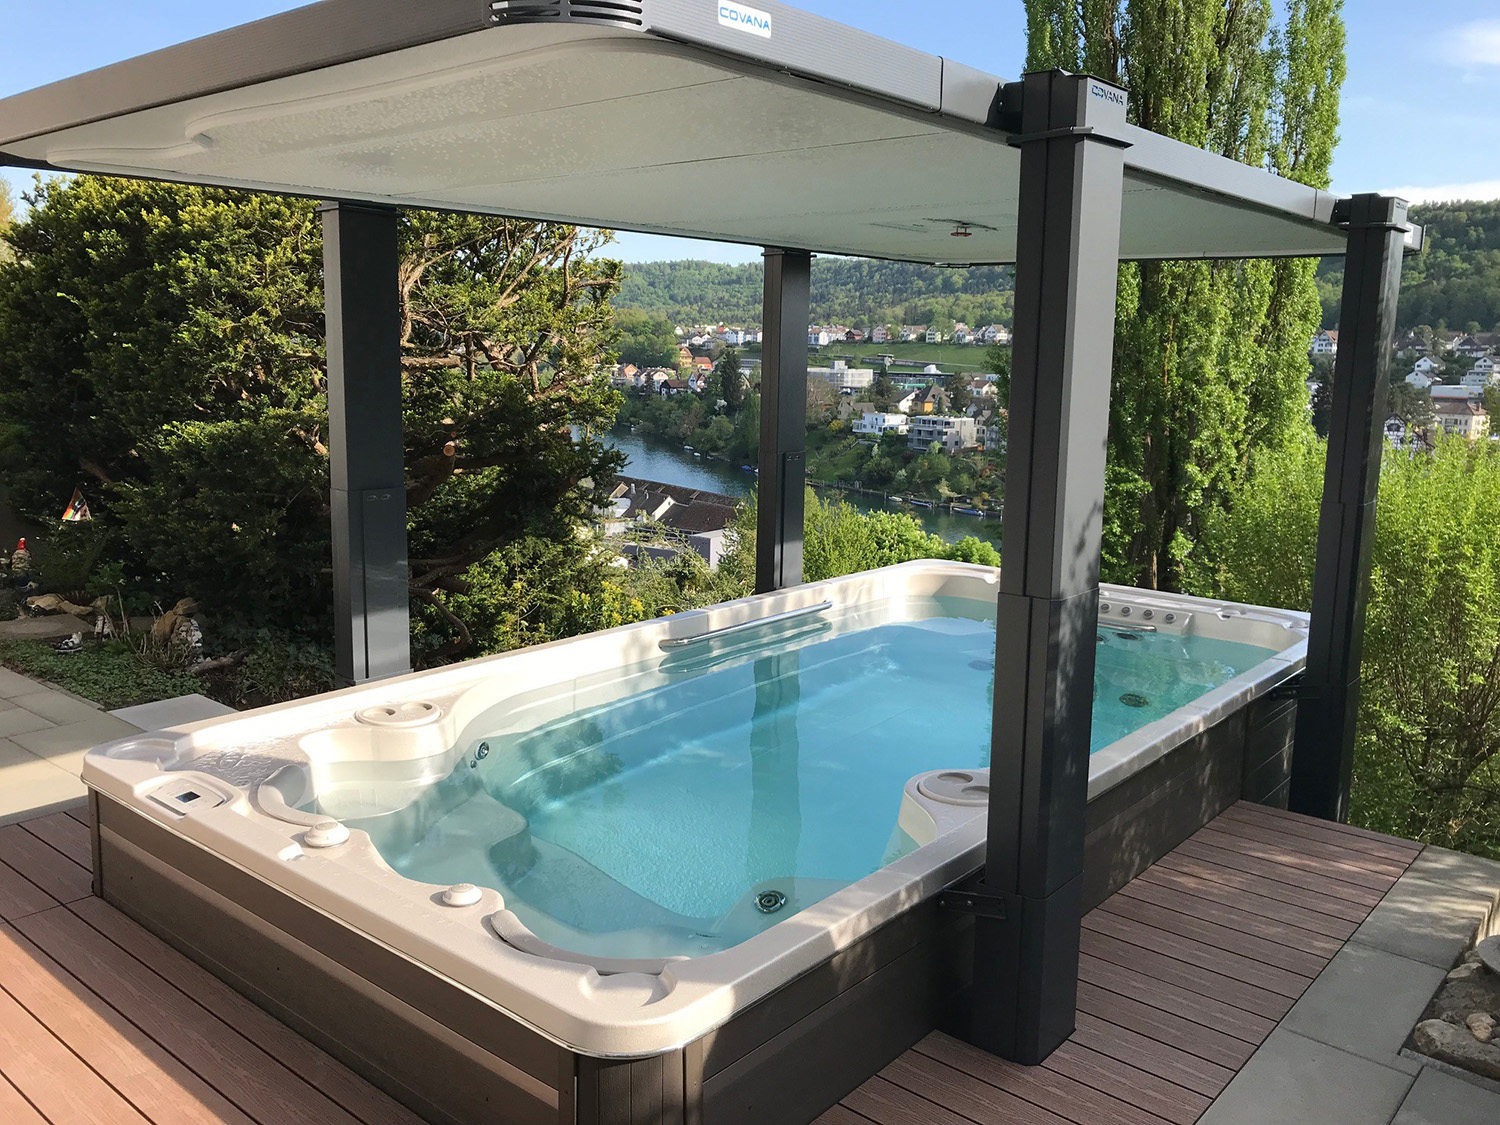 Installation Hydropool Swim-Spa 16fX inkl. Covana Legend ...